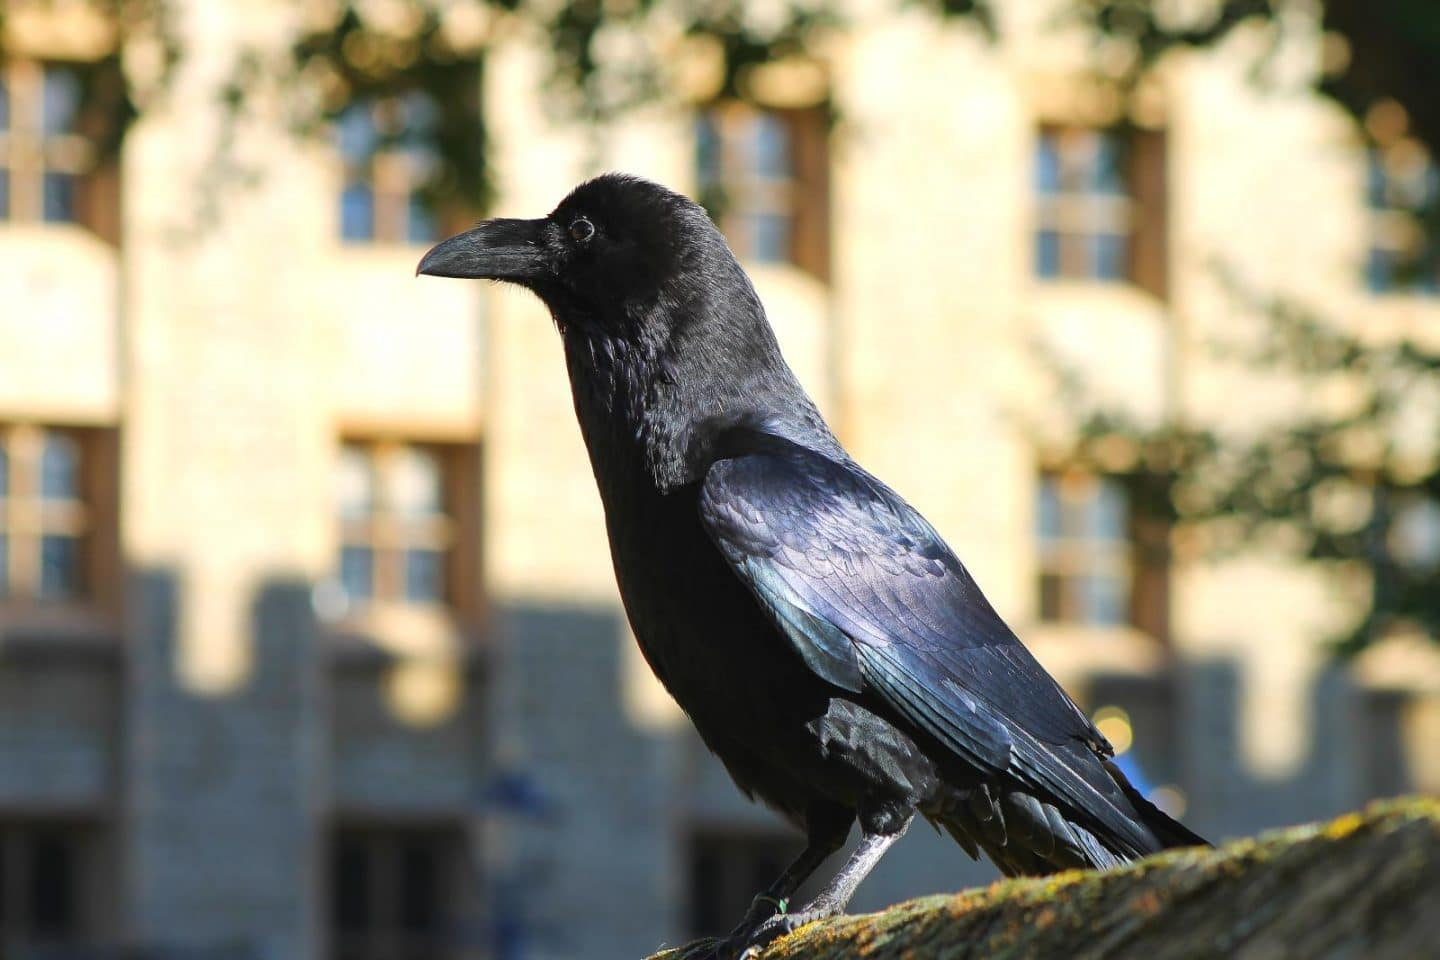 One of the Ravens at Tower of London